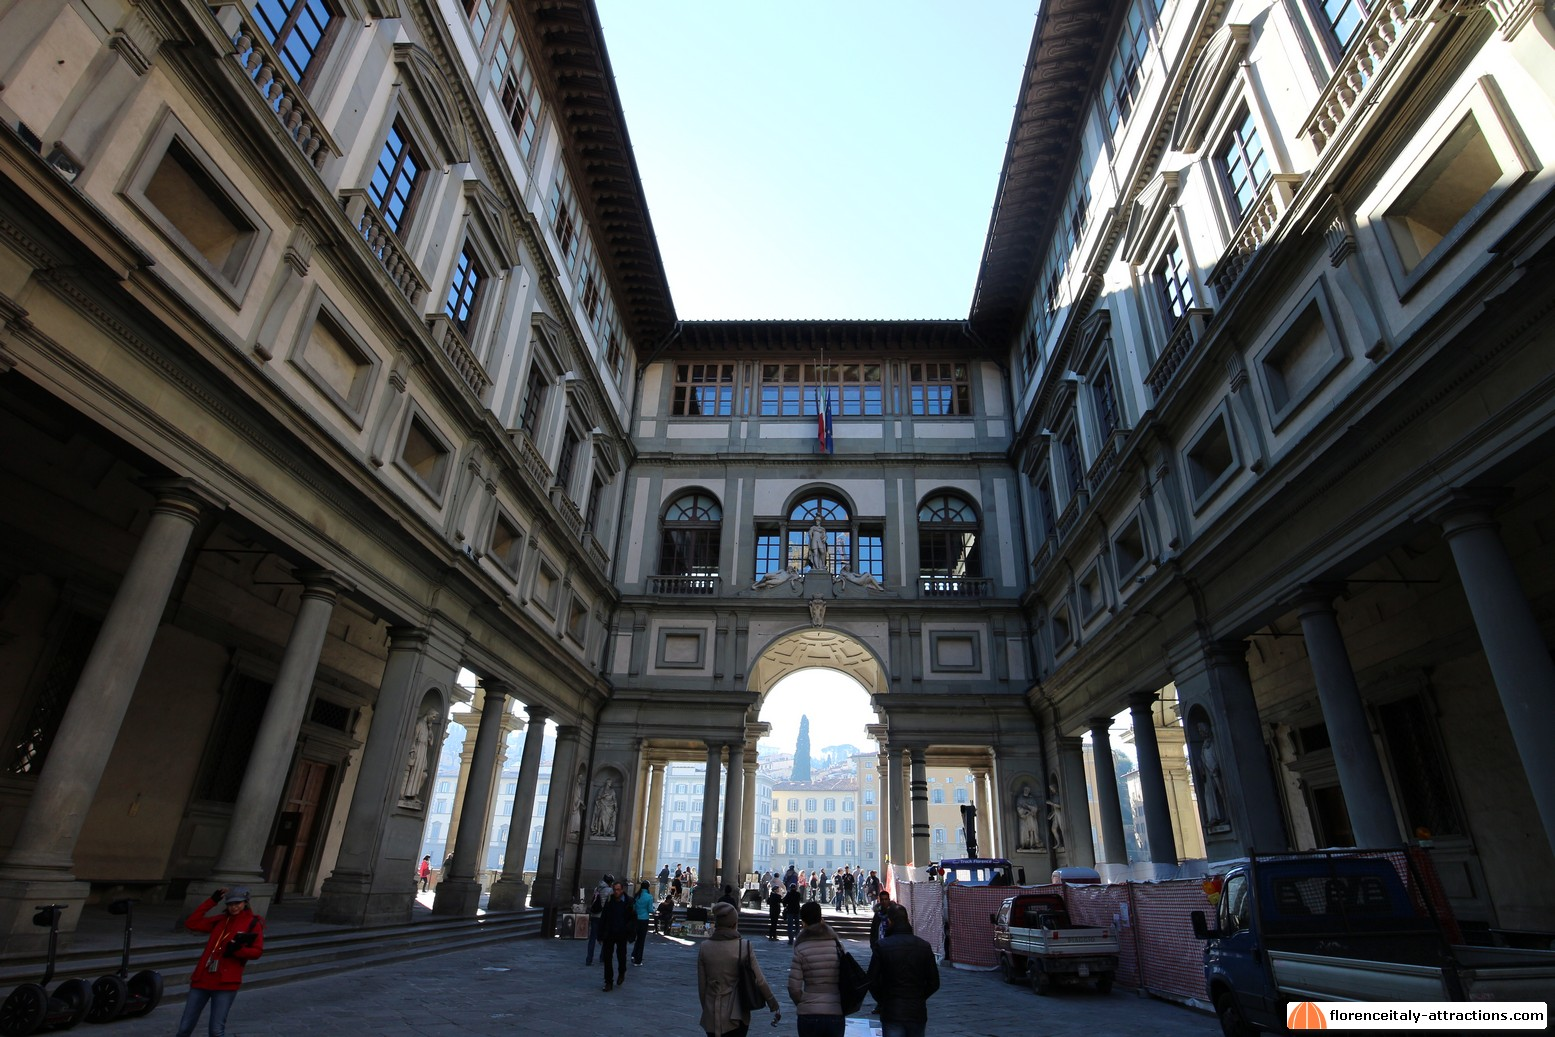 The Uffizi Gallery - Temple of the Renaissance